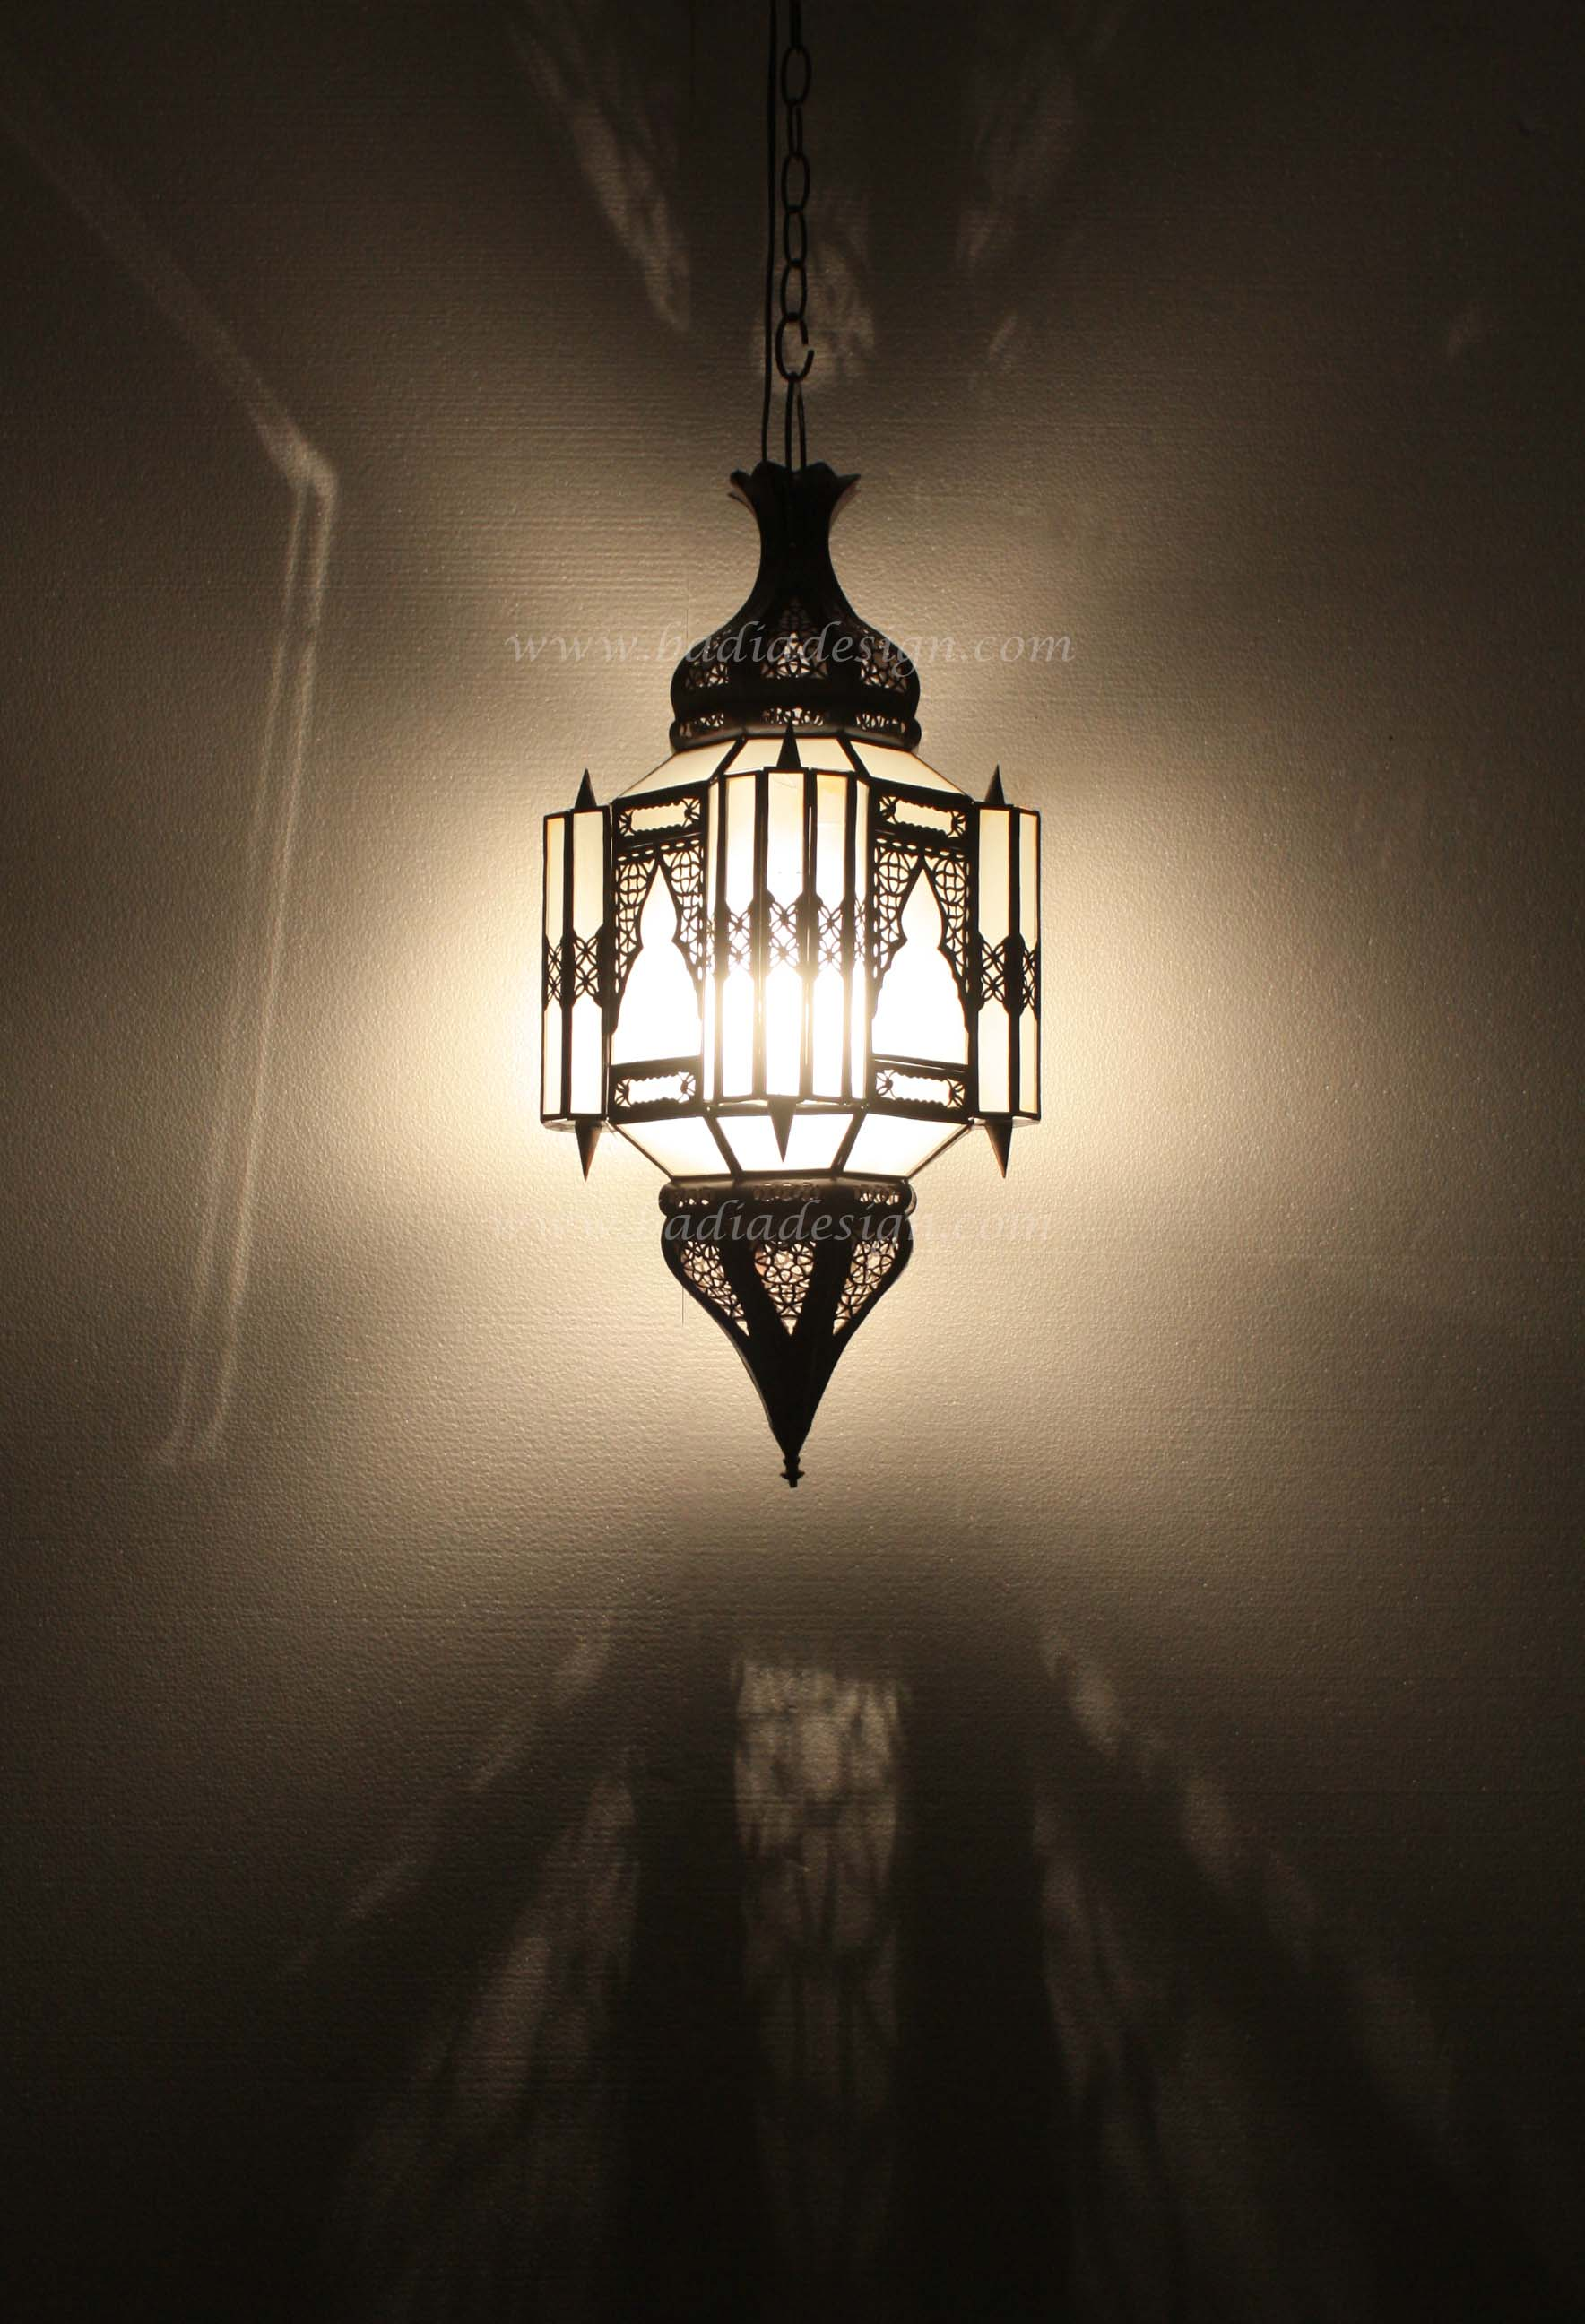 moroccan-lantern-with-white-glass-lig240-1.jpg